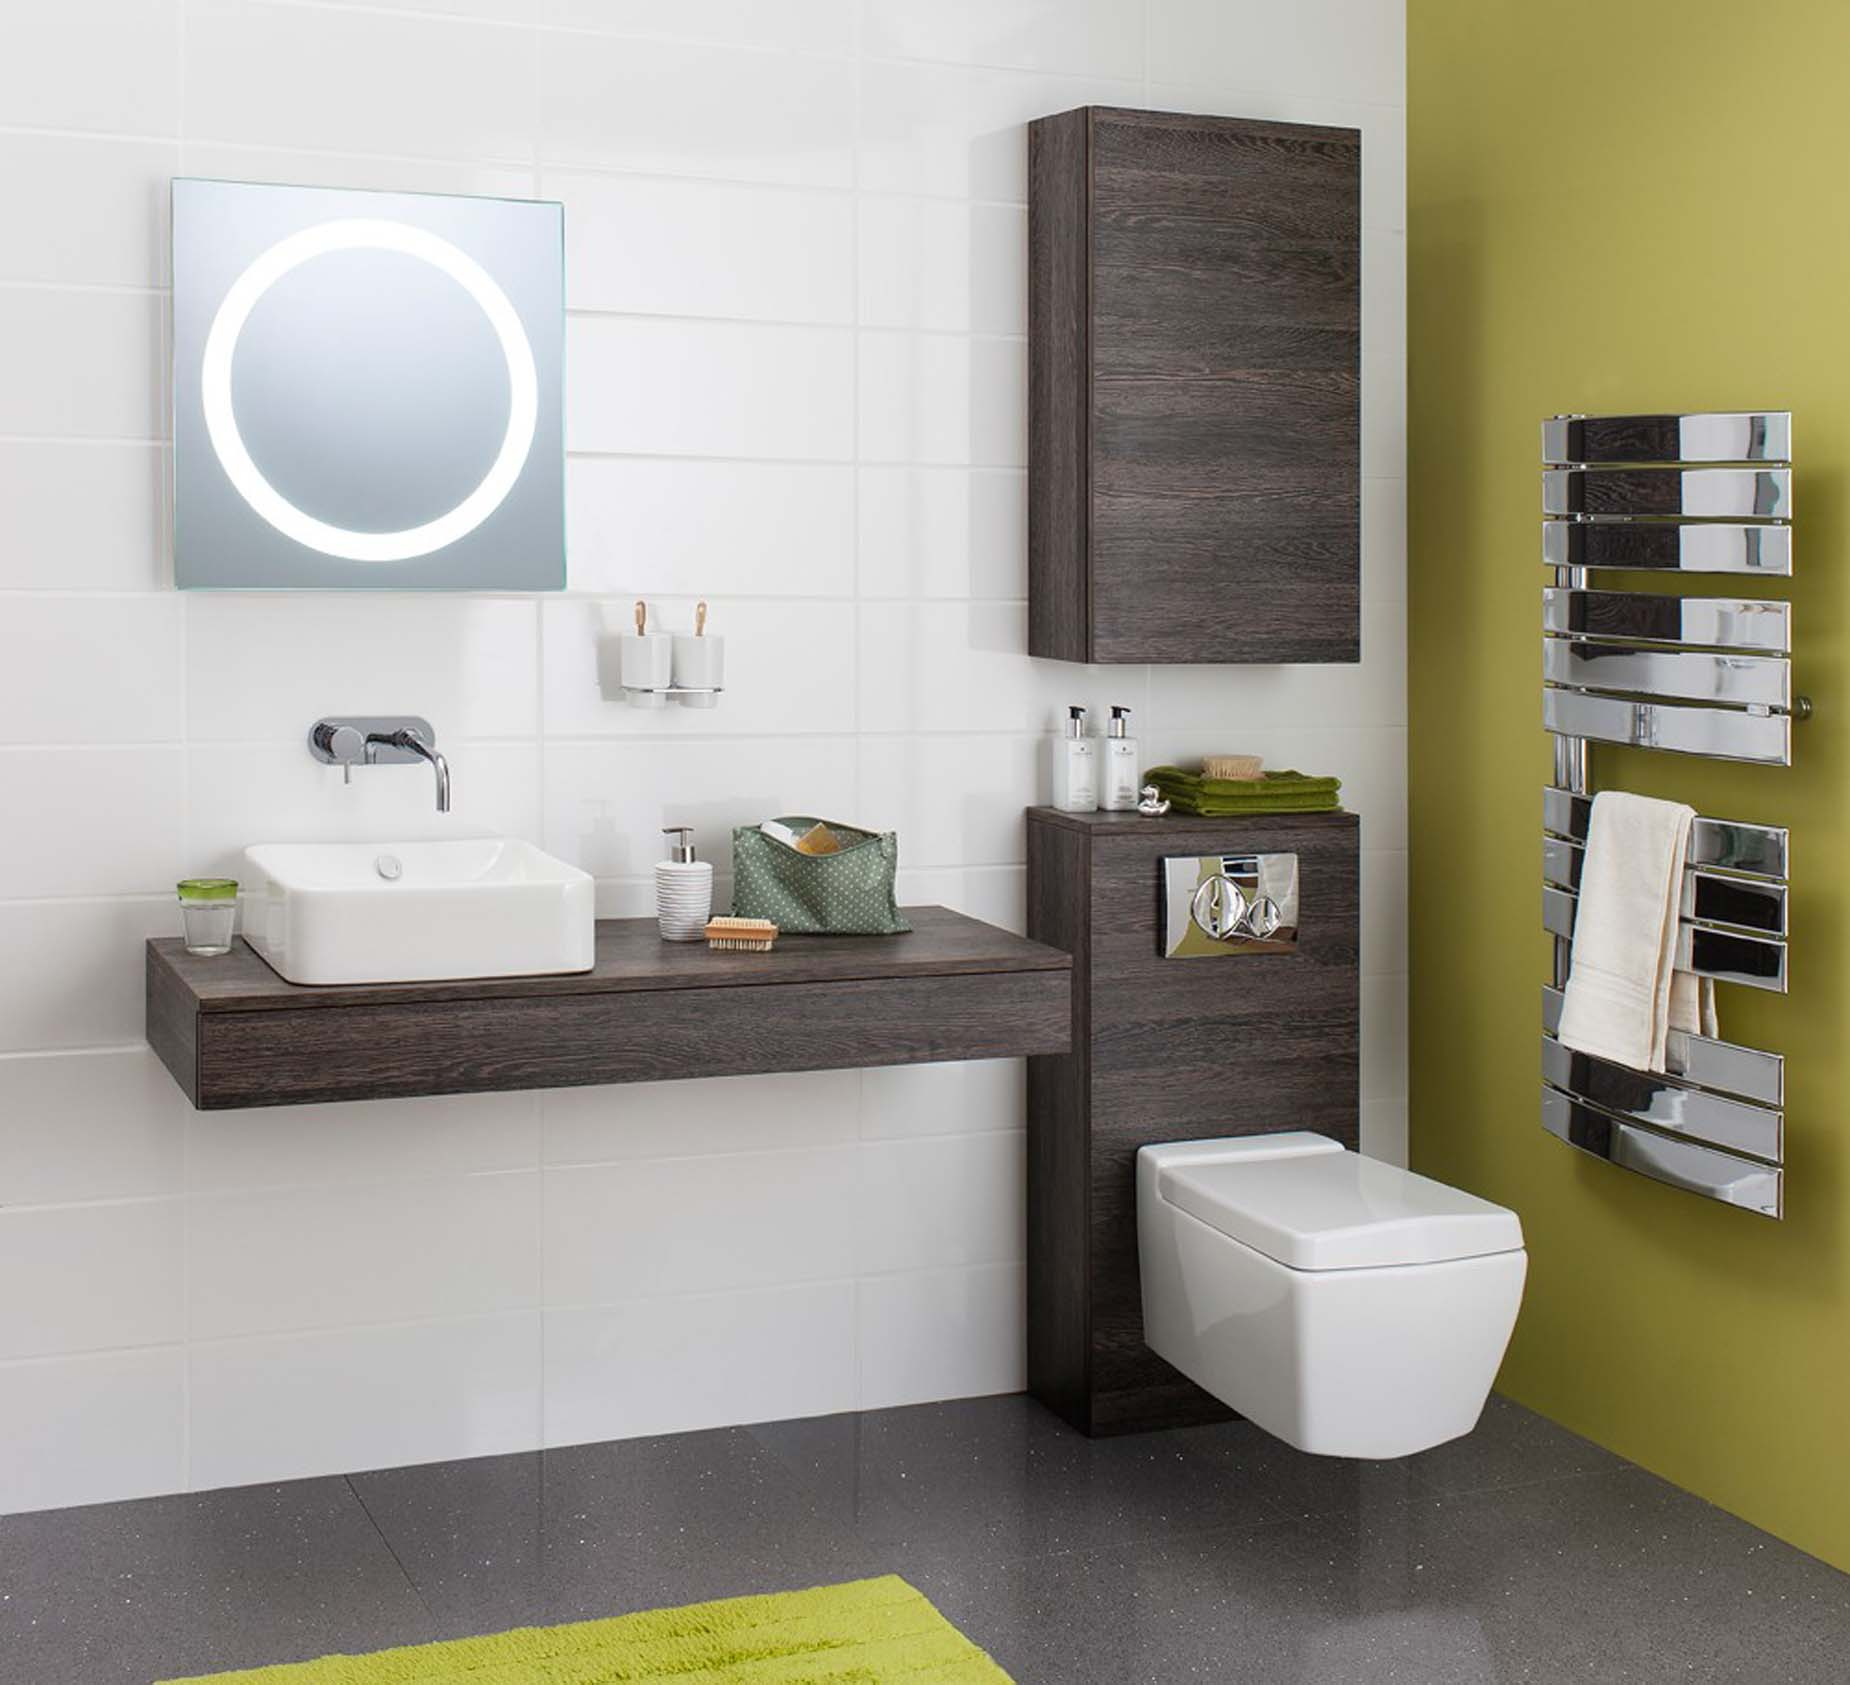 Bauhaus Bathroom Furniture Hyde Park Kitchens And Bathrooms regarding sizing 1850 X 1685